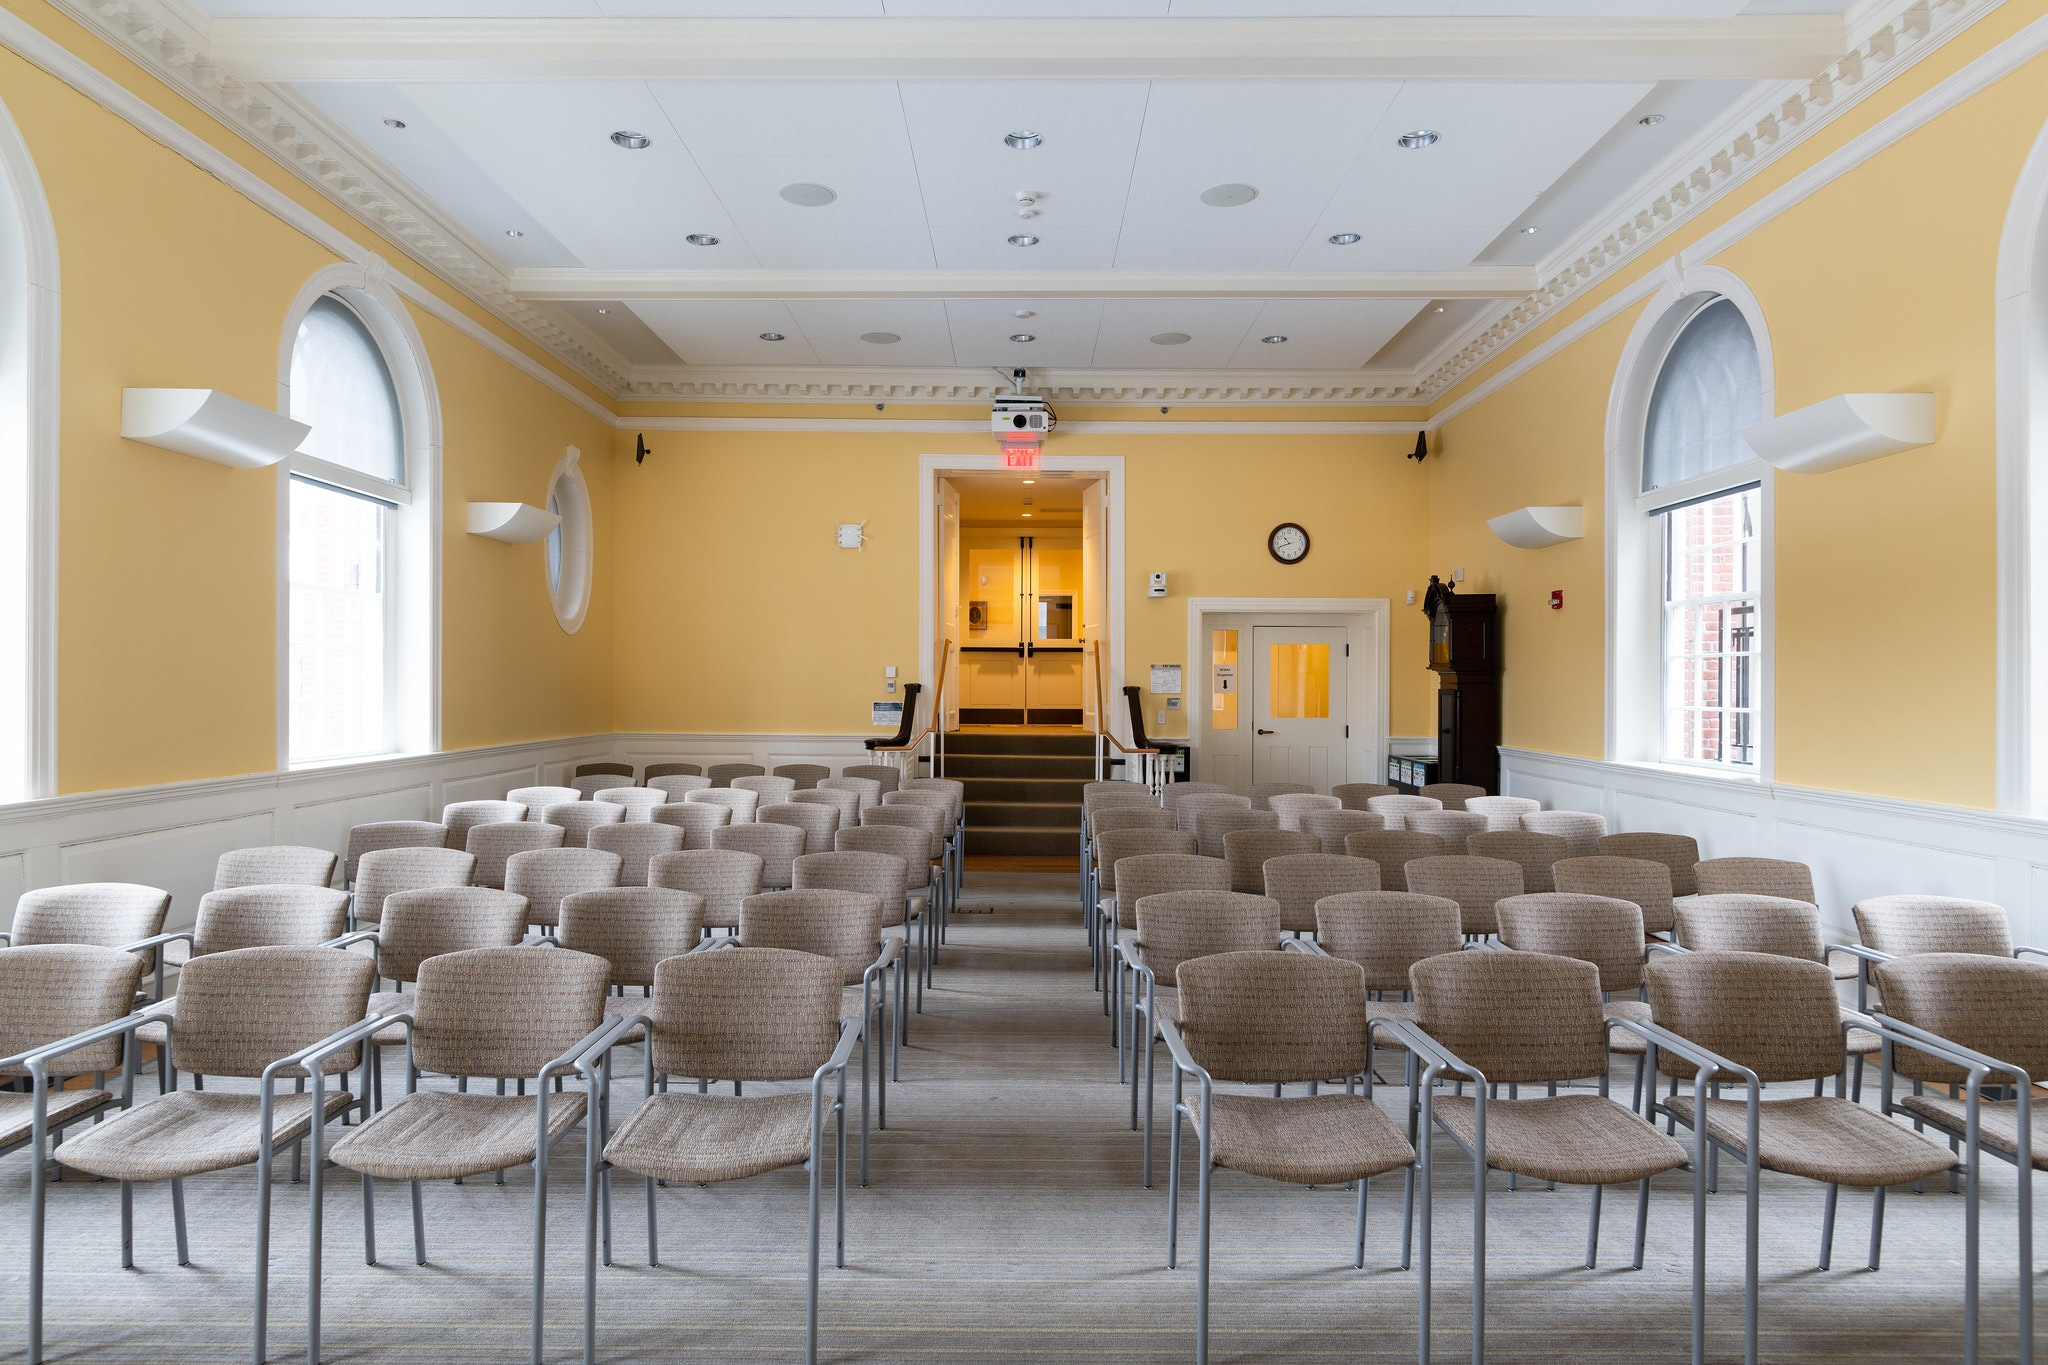 Theatre style setup for seating, view is from the front of the room. Down the middle of the seats leads to a small stairwell and entrance of the room. Walls are yellow.